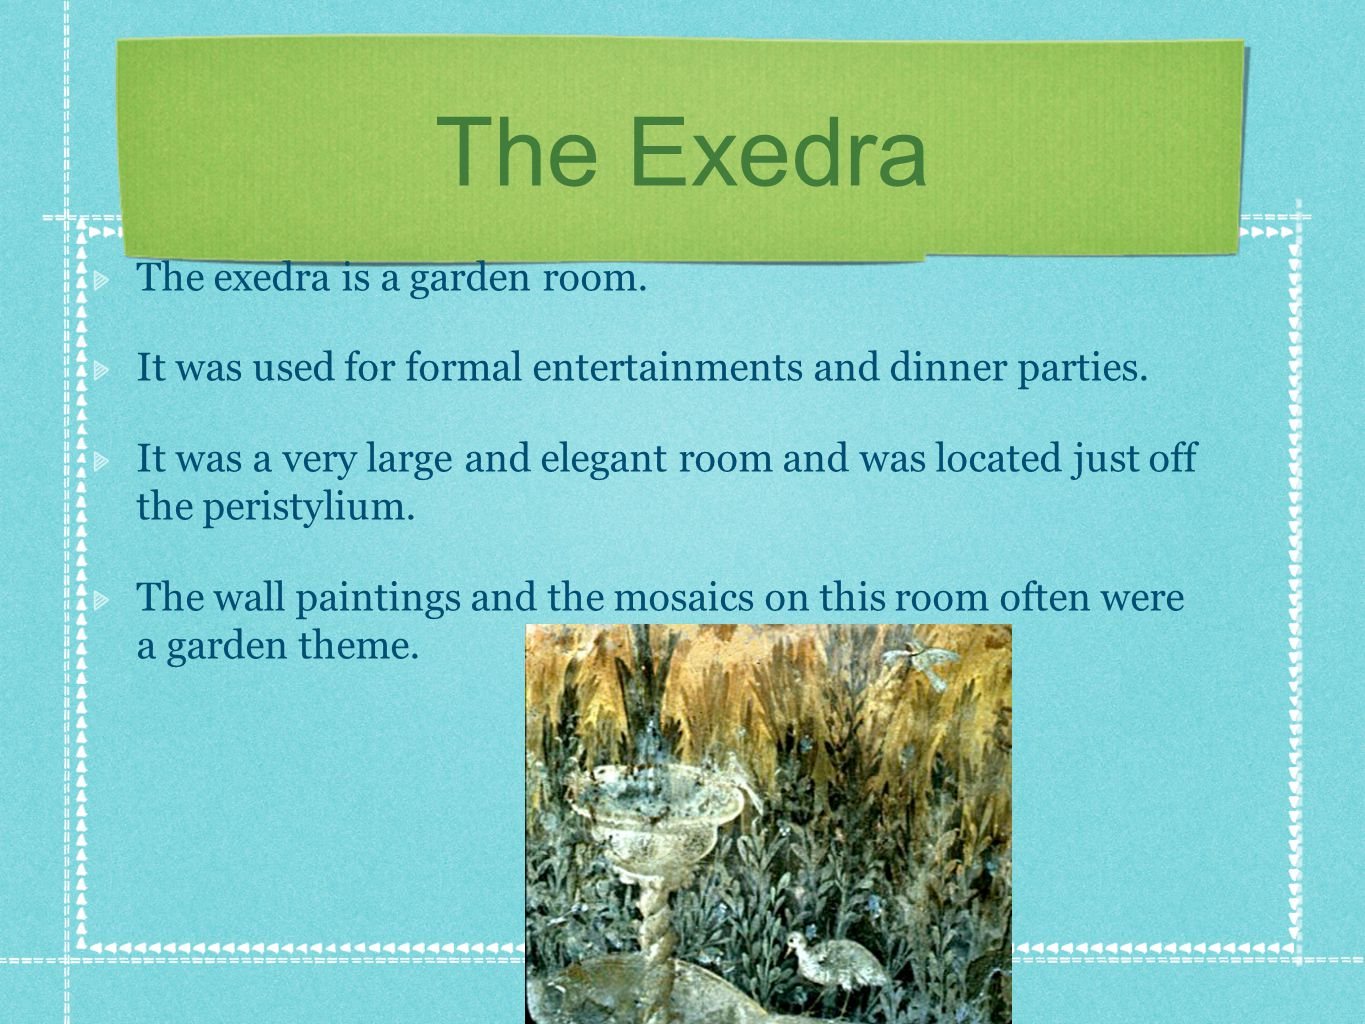 The Exedra The exedra is a garden room. It was used for formal entertainments and dinner parties. It was a very large and elegant room and was located